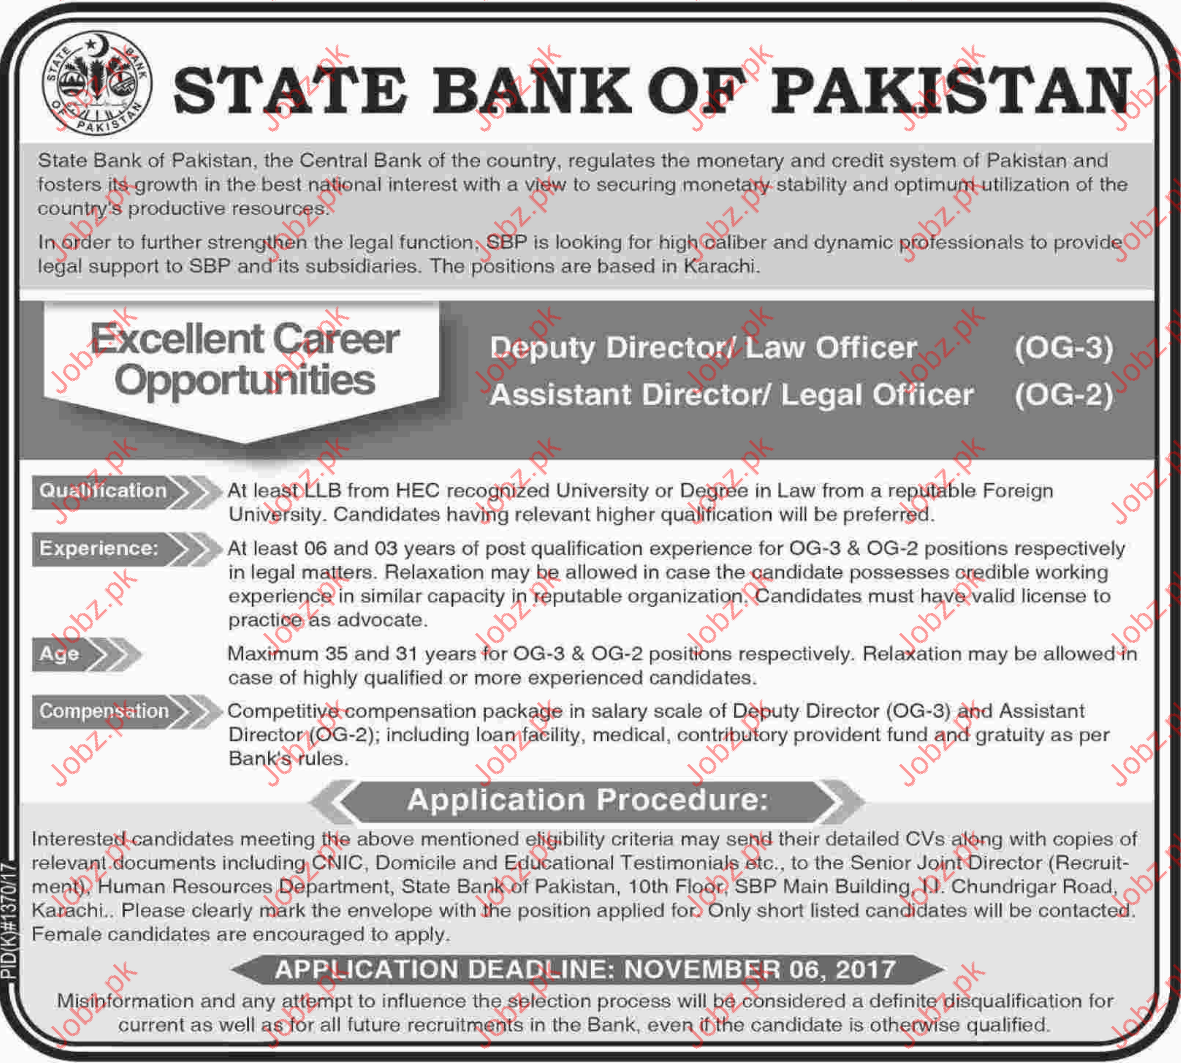 State Bank of Punjab Jobs Opportunity